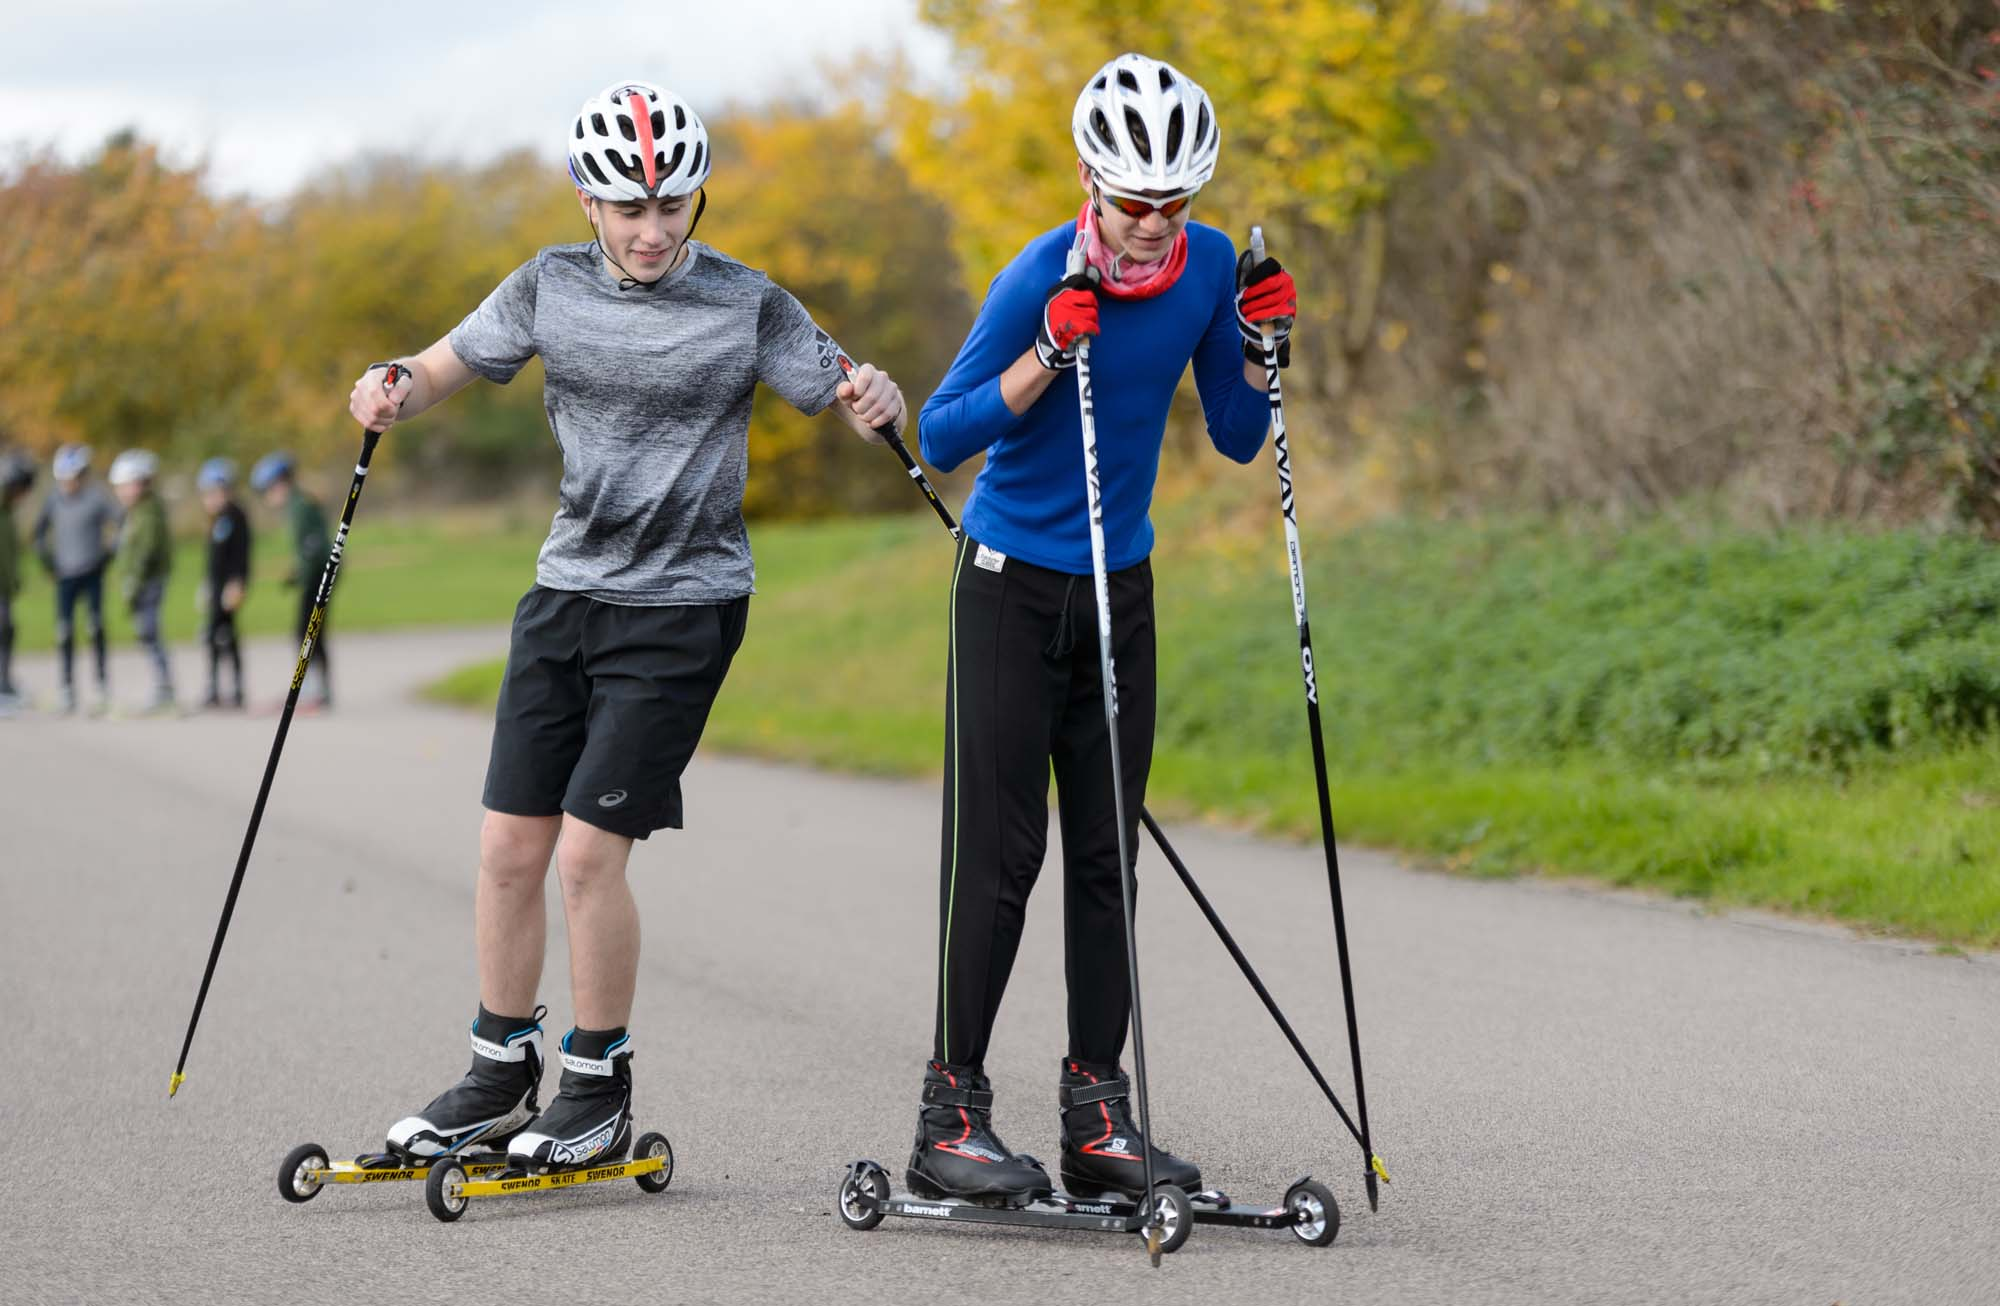 Two teenage boys train in nordic skiing